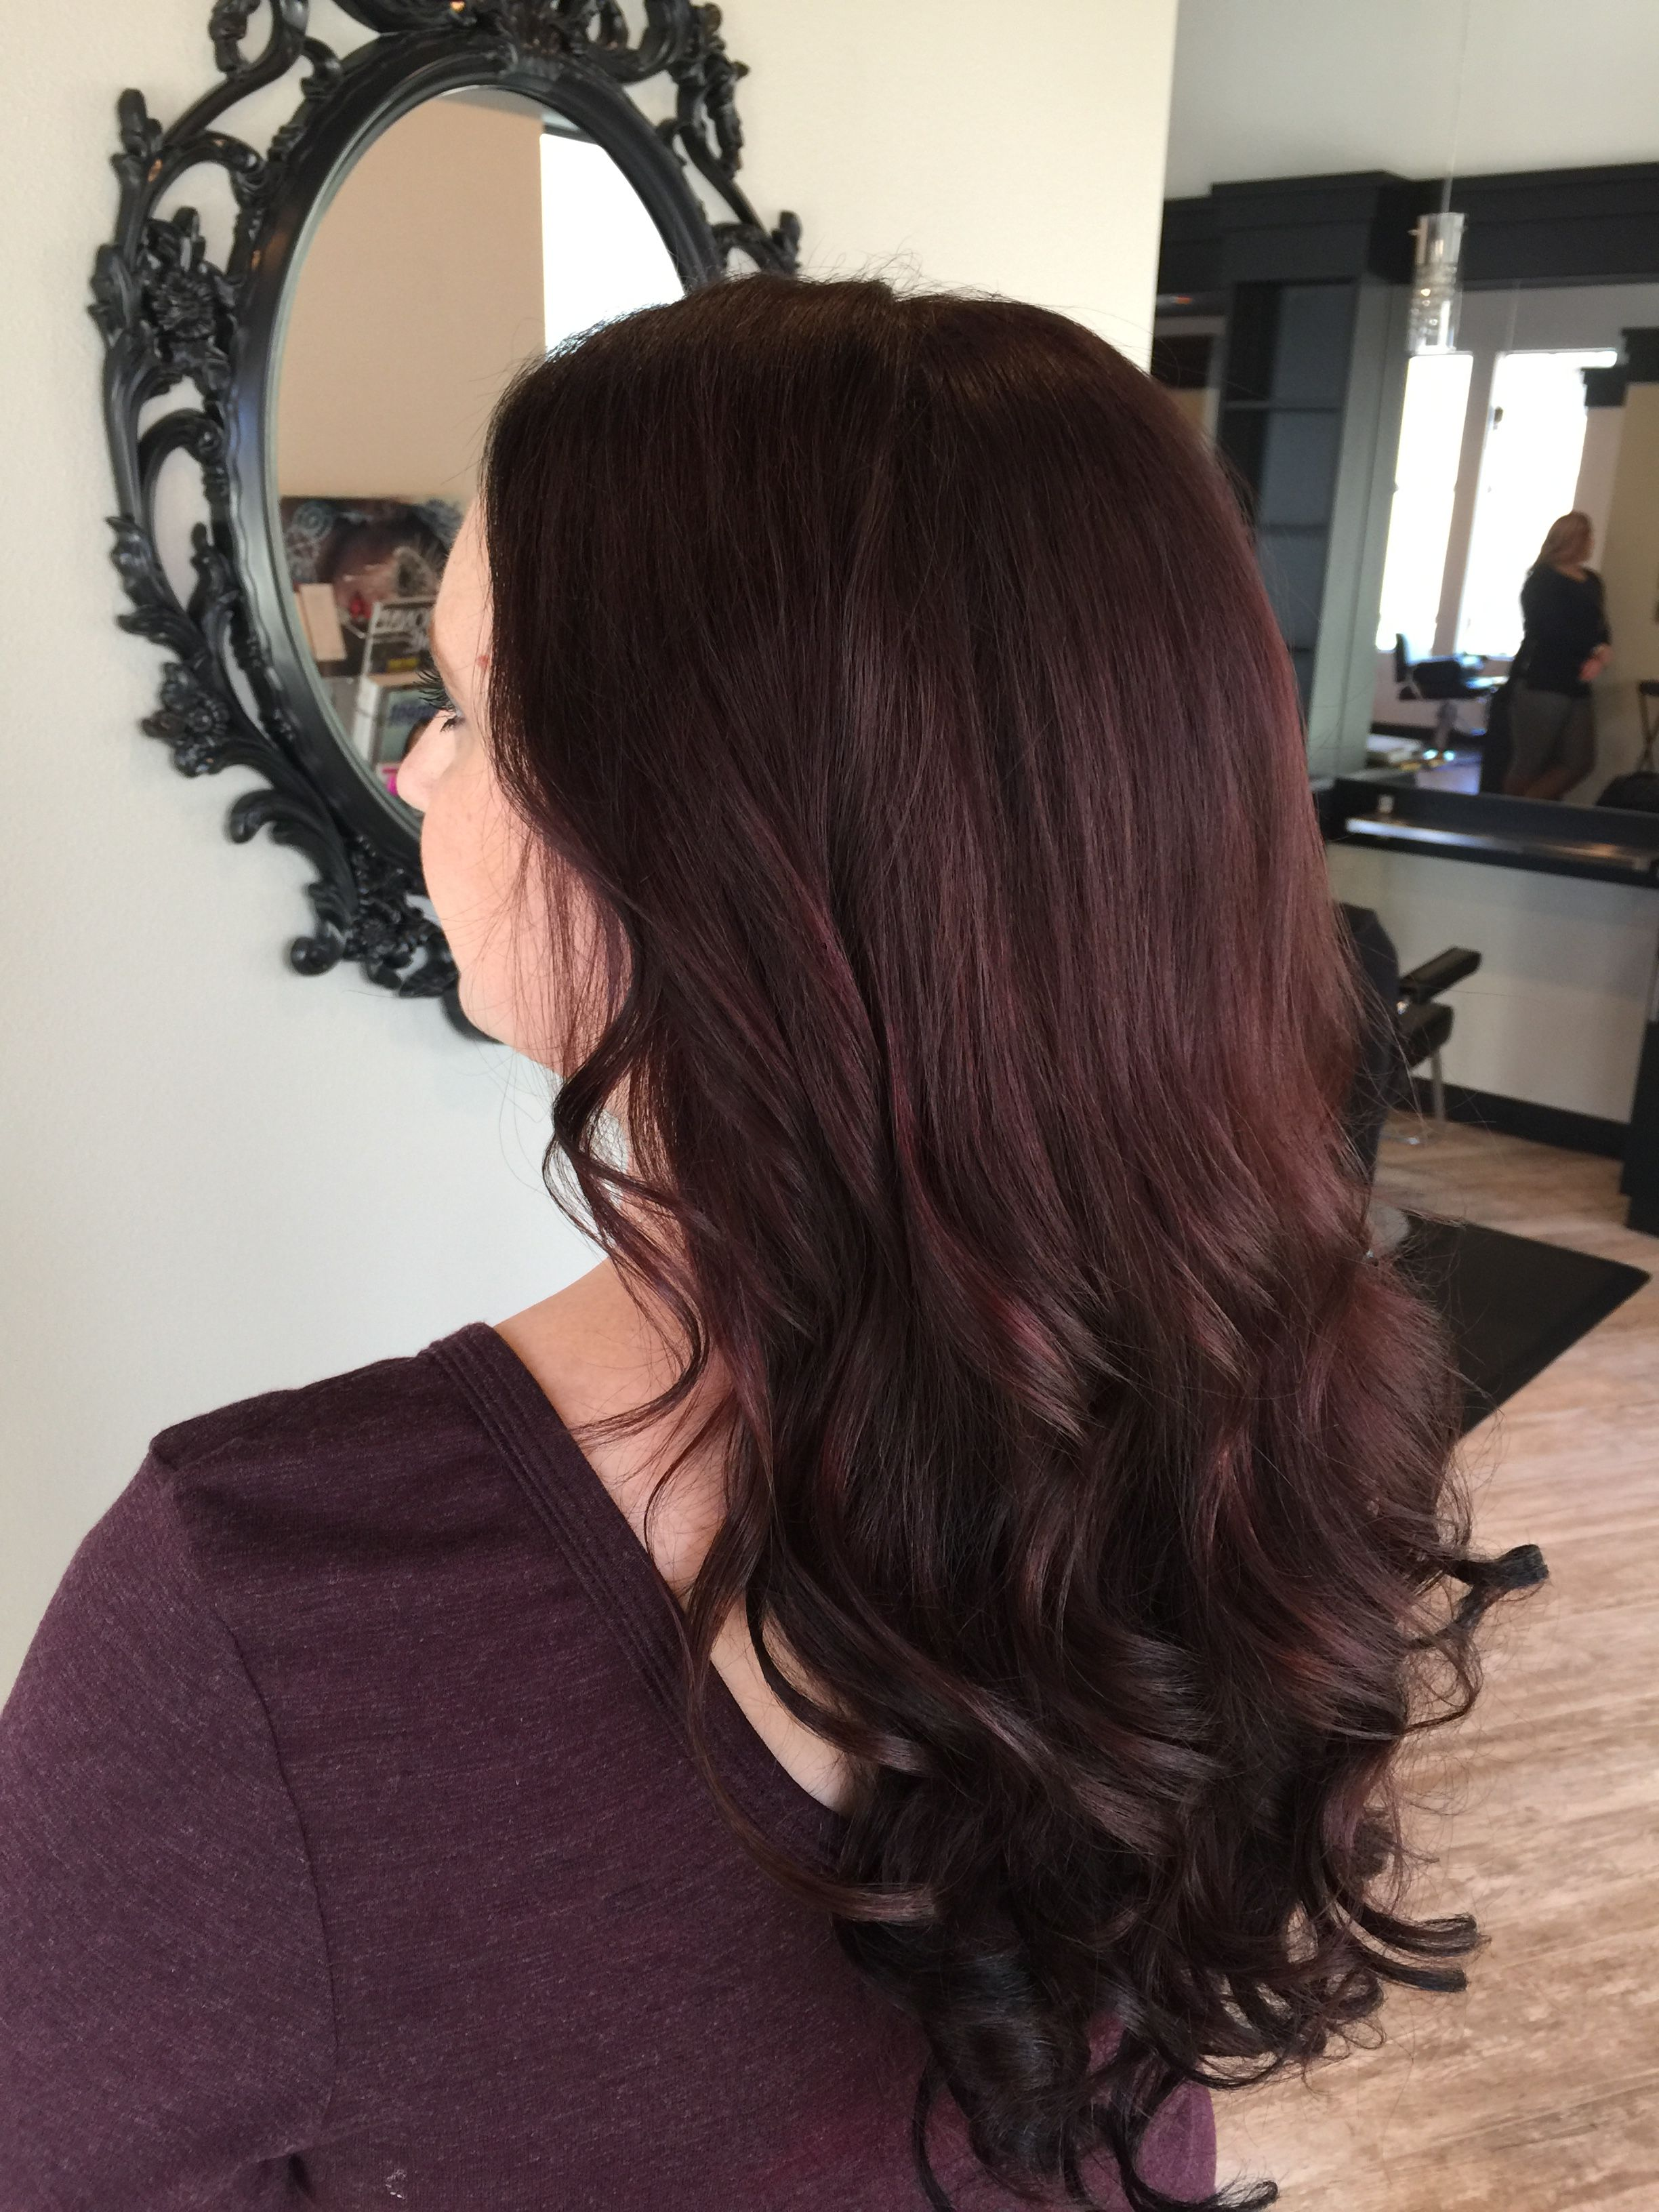 Dark Mahogany Hair Color With Extensions Hair And Beauty Hair